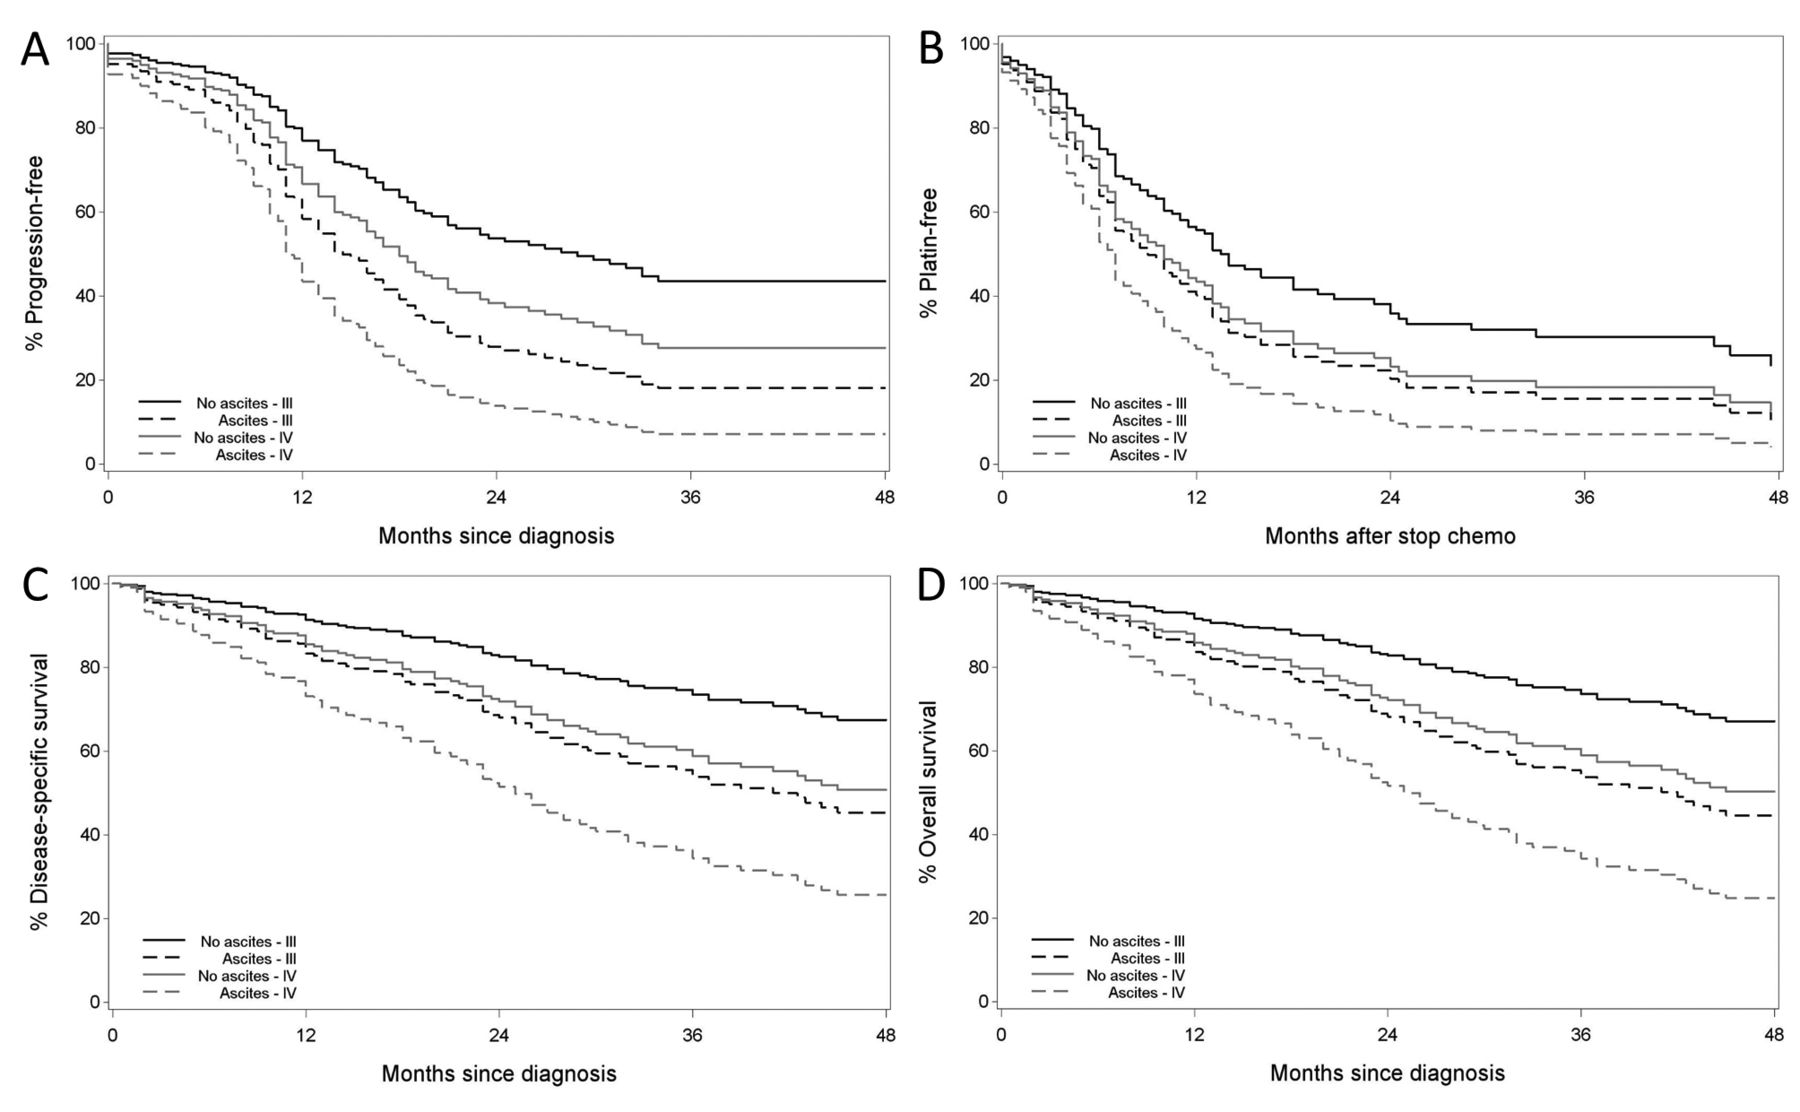 Increased Immunosuppression Is Related To Increased Amounts Of Ascites And Inferior Prognosis In Ovarian Cancer